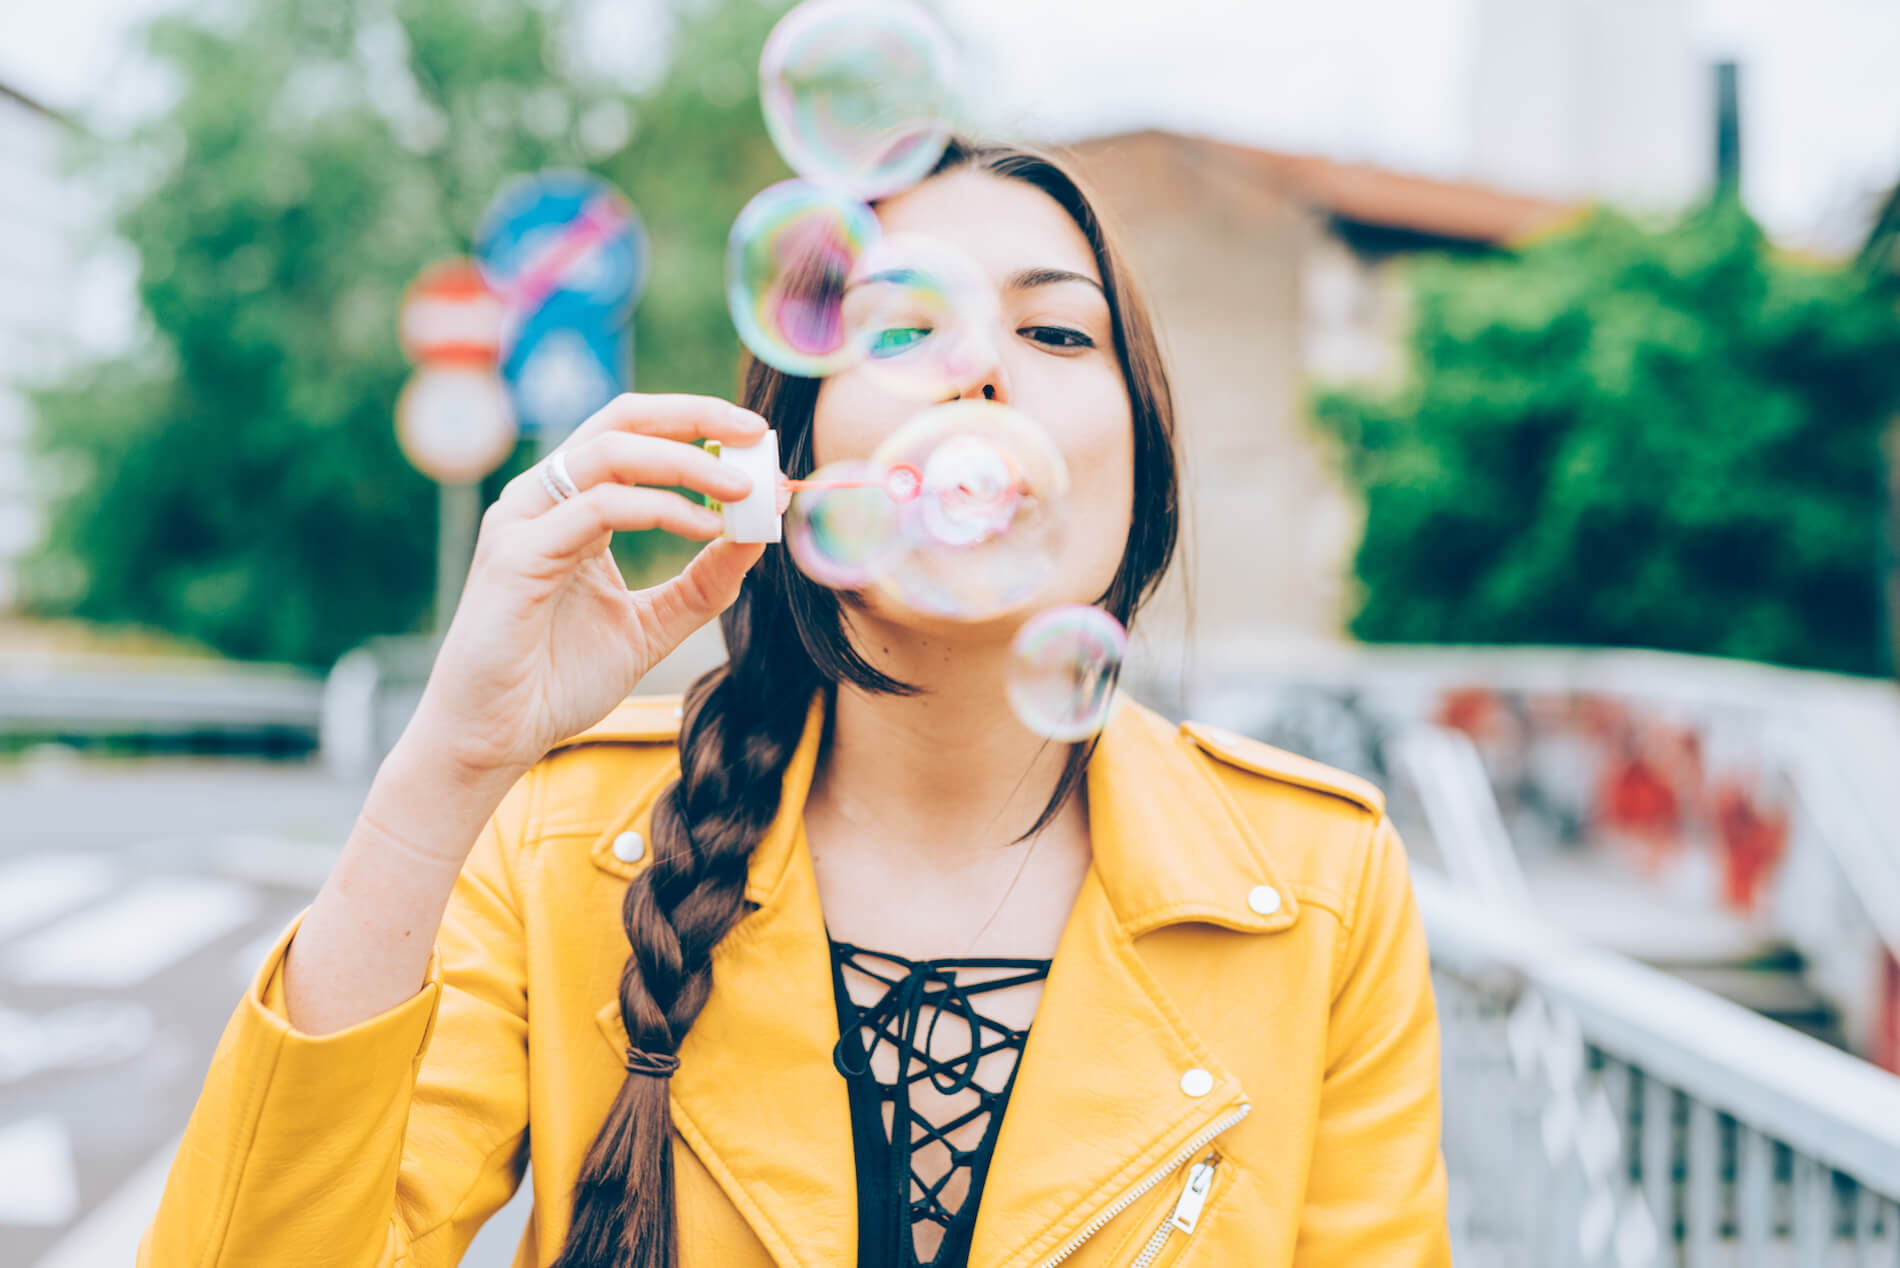 hipster-woman-playing-with-bubble-soap-PSK656C.jpg